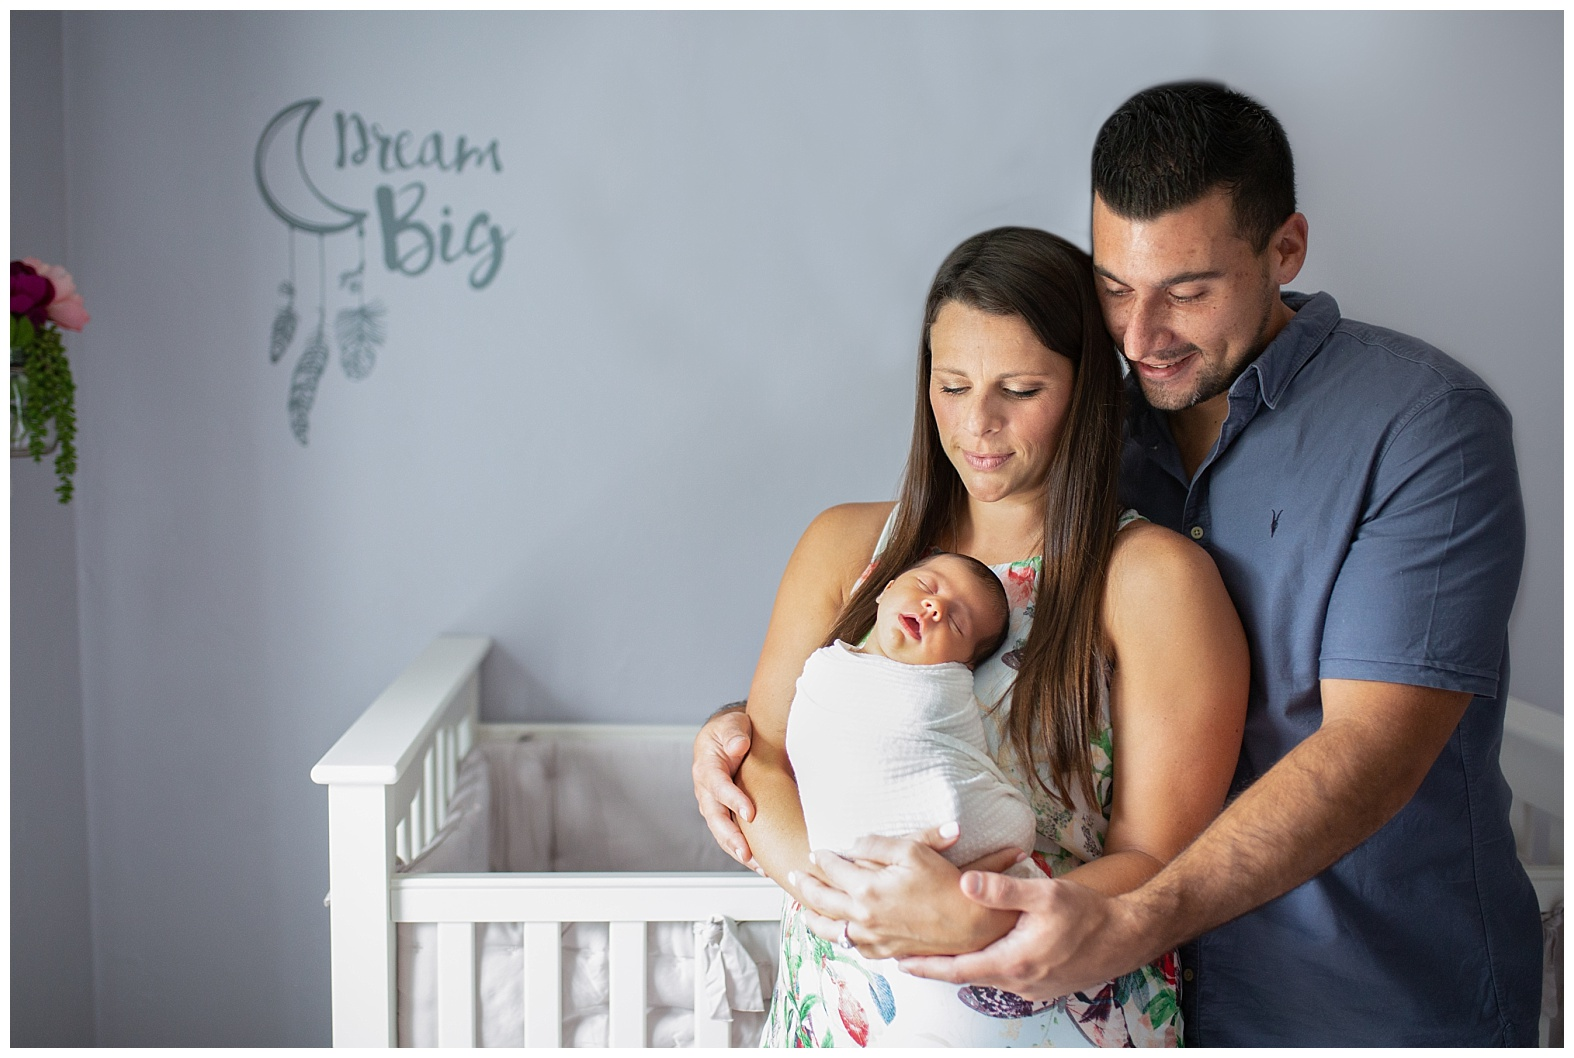 Lifestyle Newborn Photographer home Miami Broward South Florida